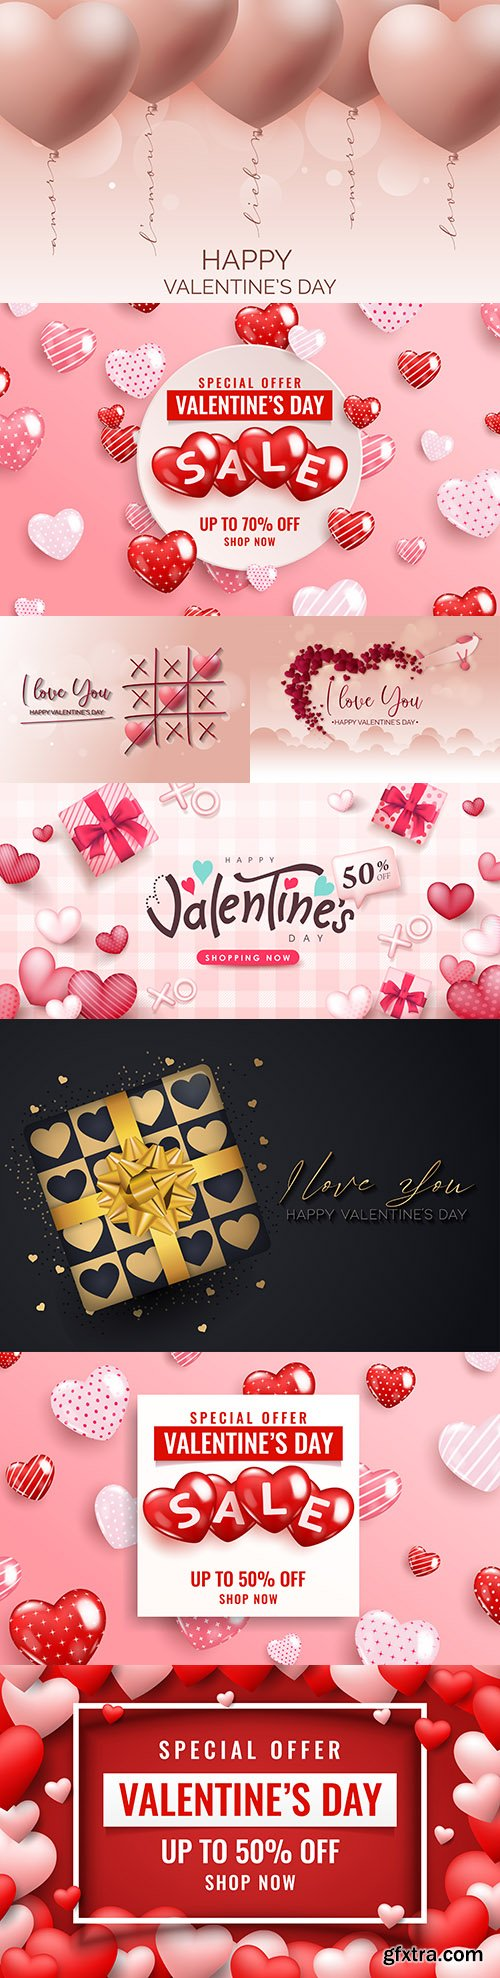 Happy Valentine's Day design banner sale with hearts